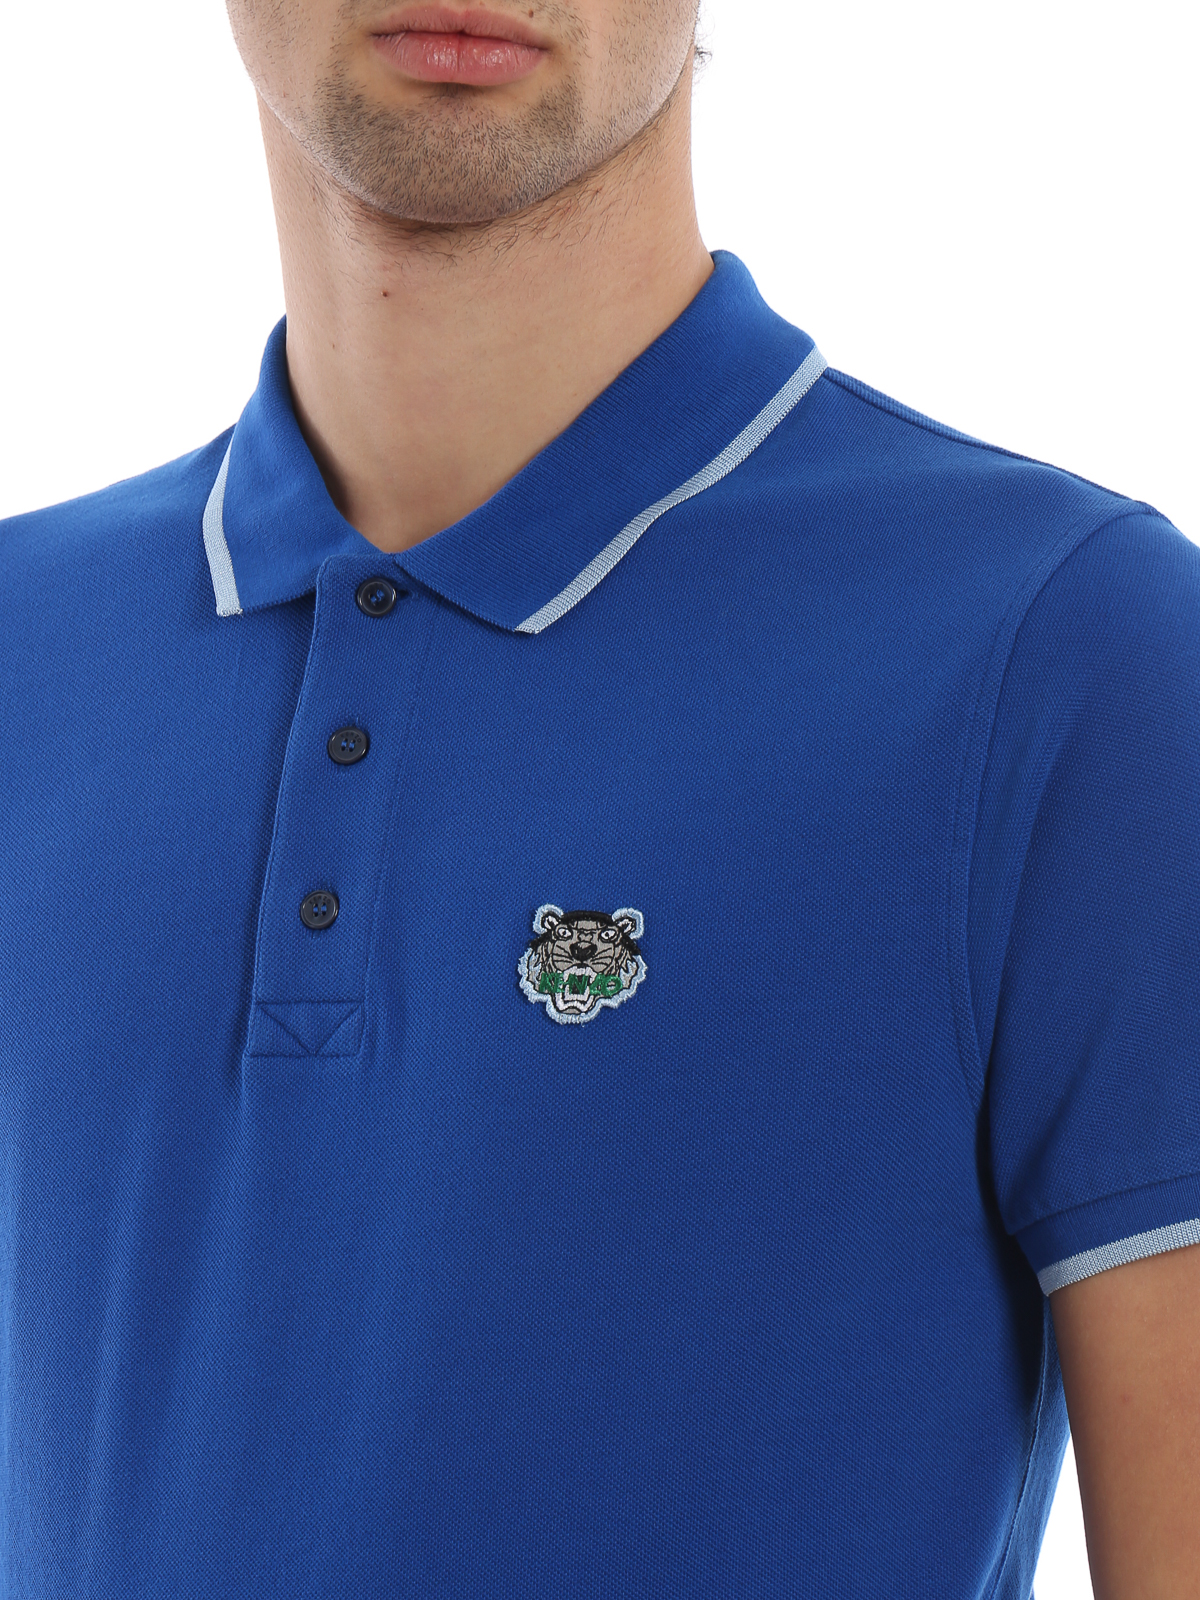 a22866627b Kenzo - K Fit Tiger crest blue cotton polo shirt - polo shirts ...